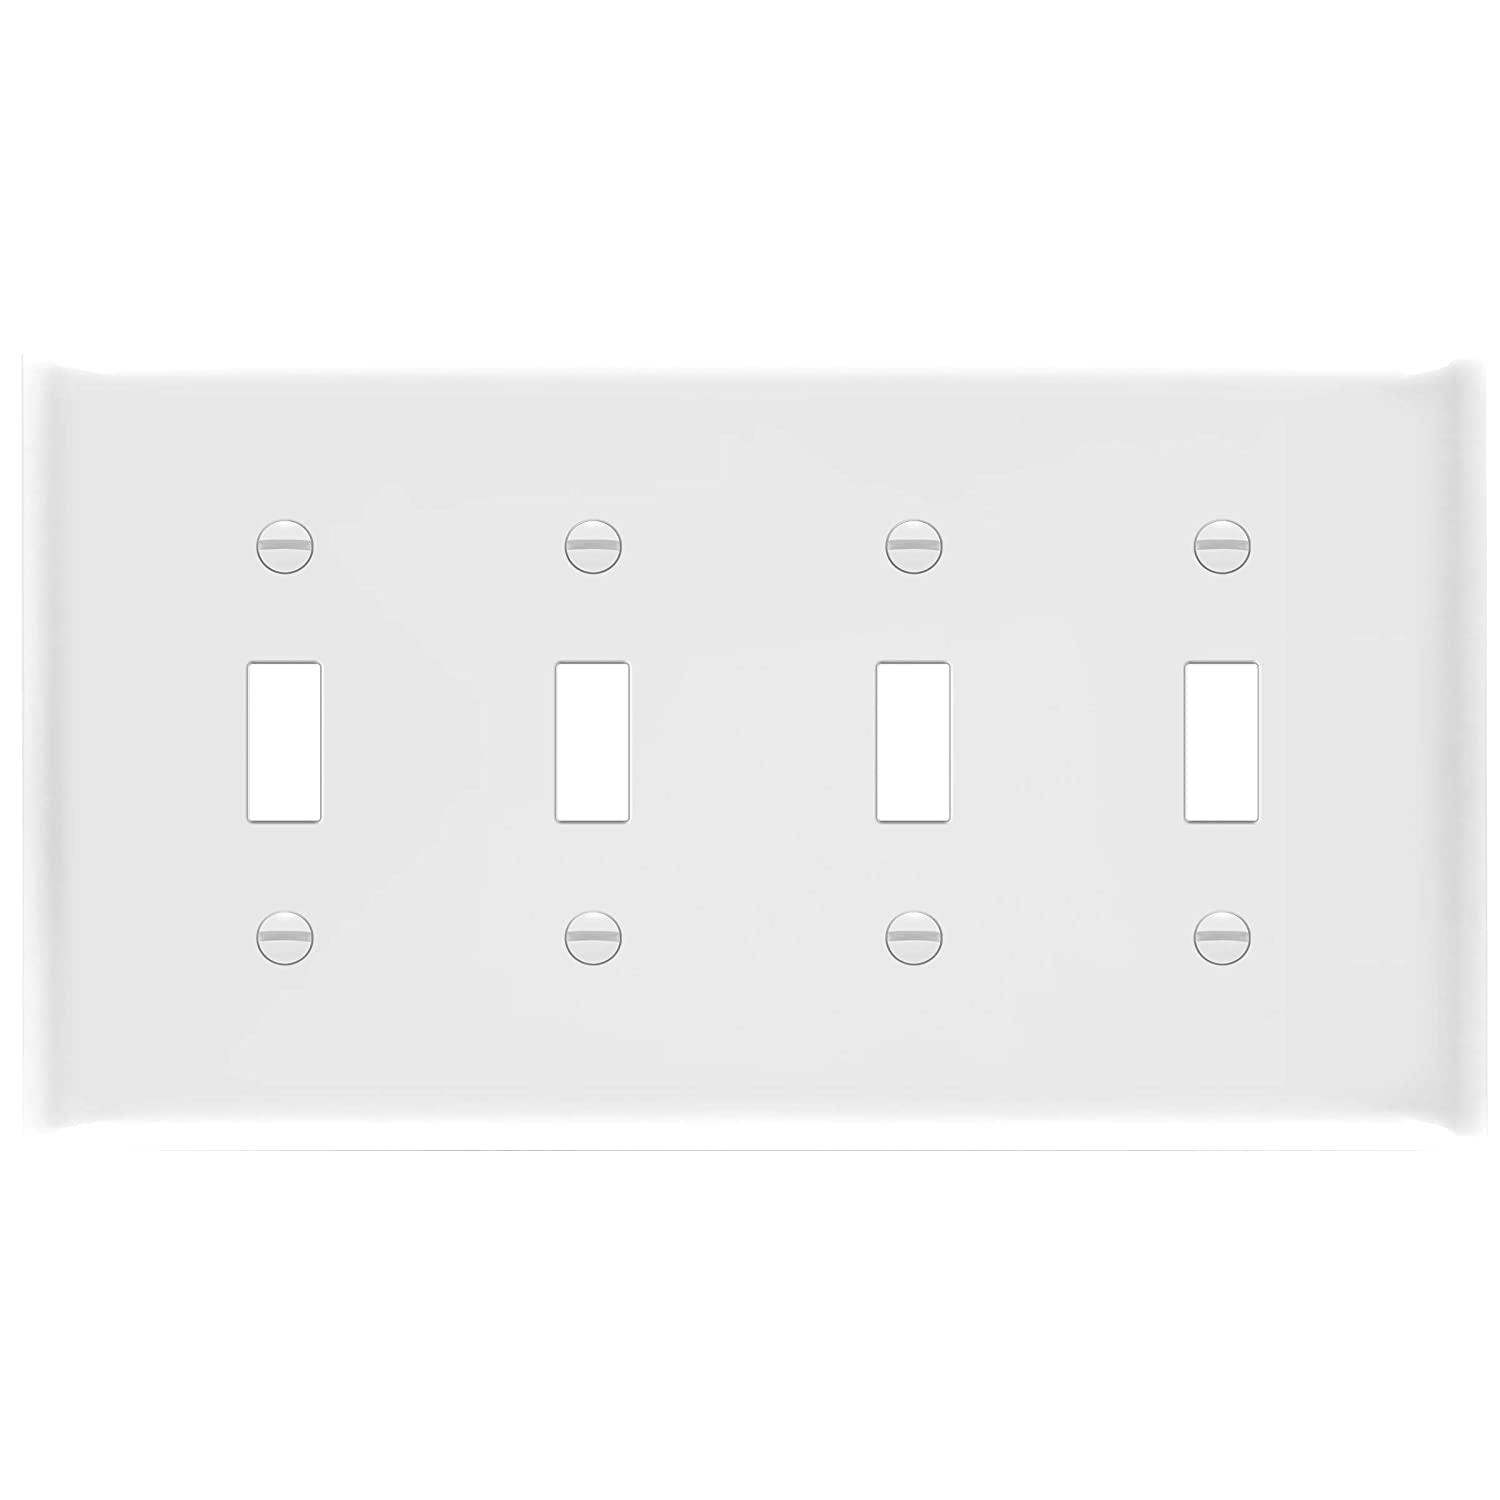 Ul Listed 4 Gang 4 88 X 8 58 Ivory Unbreakable Polycarbonate Thermoplastic Enerlites Toggle Light Switch Wall Plate 8814m I Mid Size Tools Home Improvement Electrical